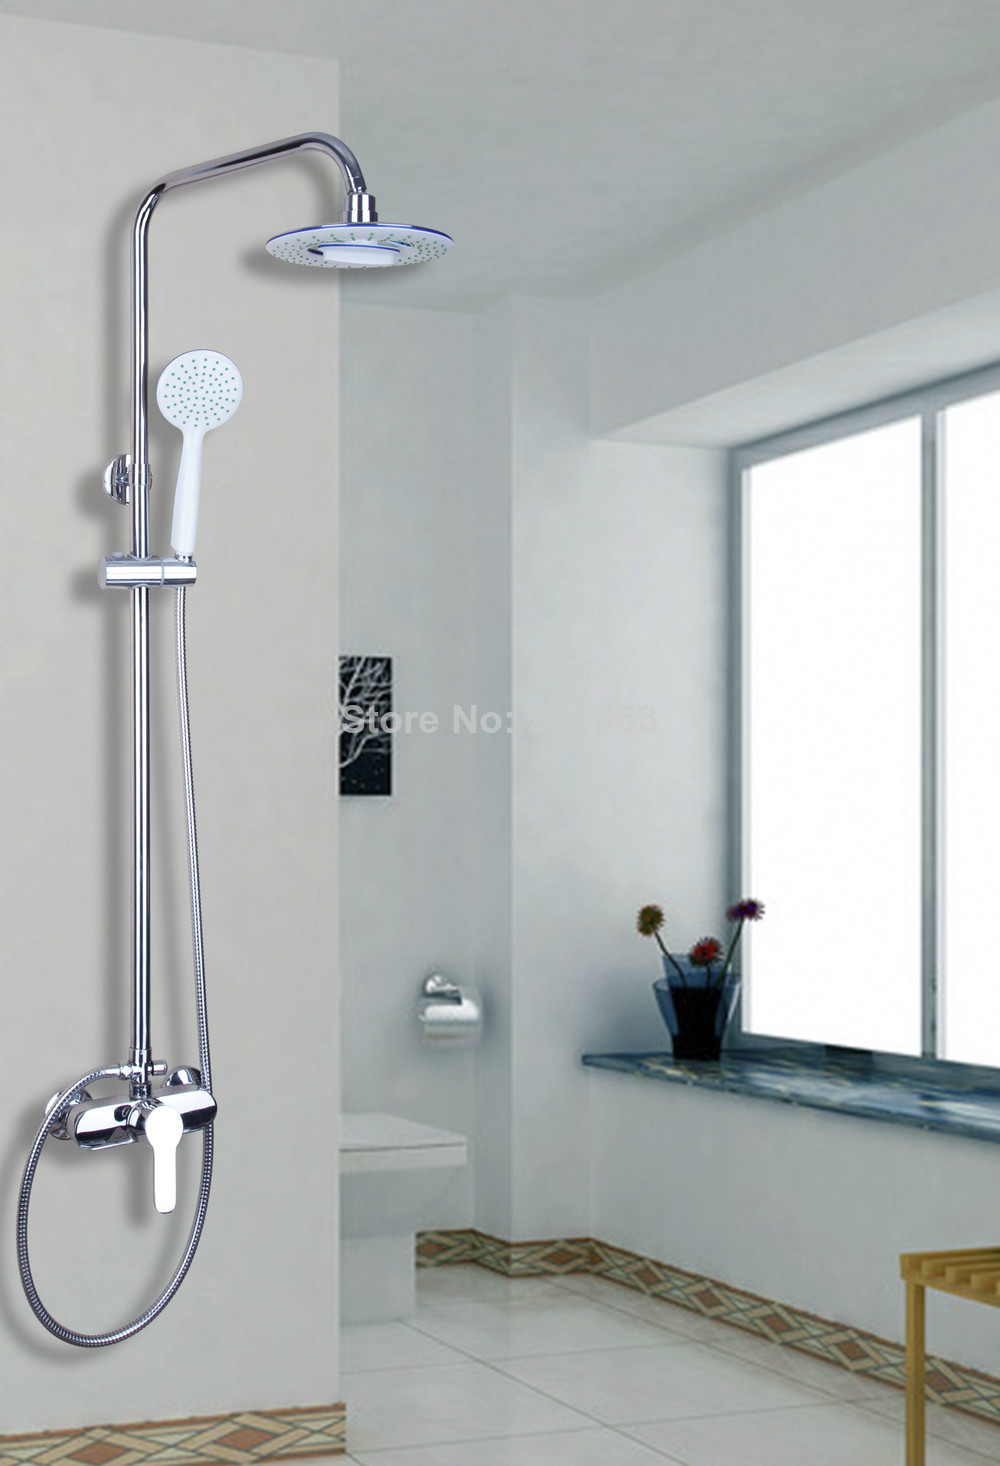 new bathroom rain shower system hand shower head tub spout setchina mainland